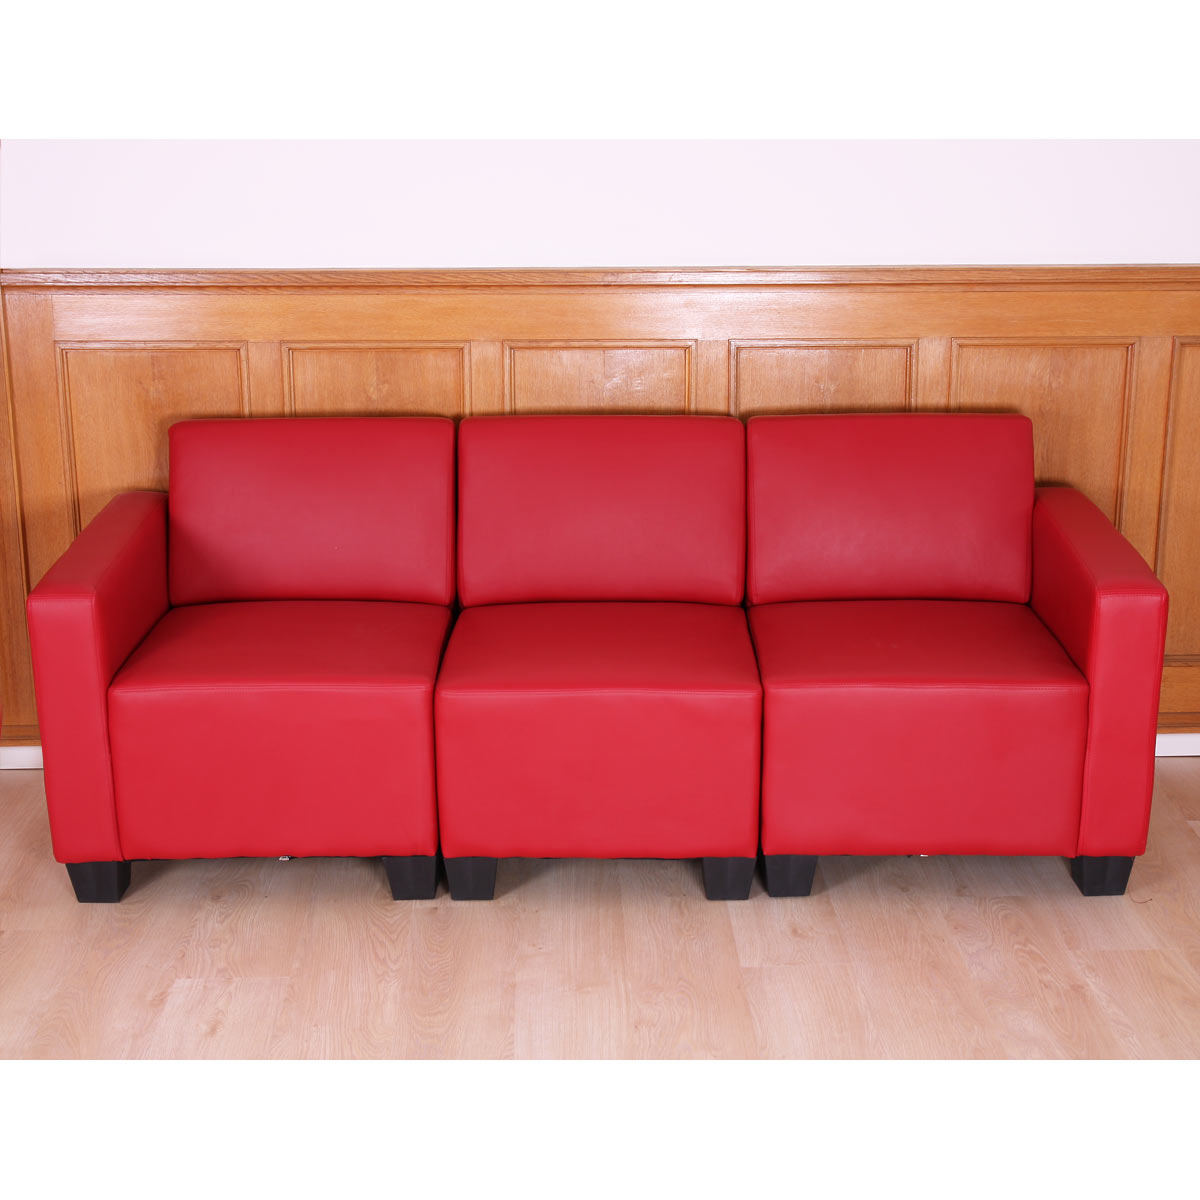 modular 3 sitzer sofa couch lyon kunstleder schwarz creme rot ebay. Black Bedroom Furniture Sets. Home Design Ideas